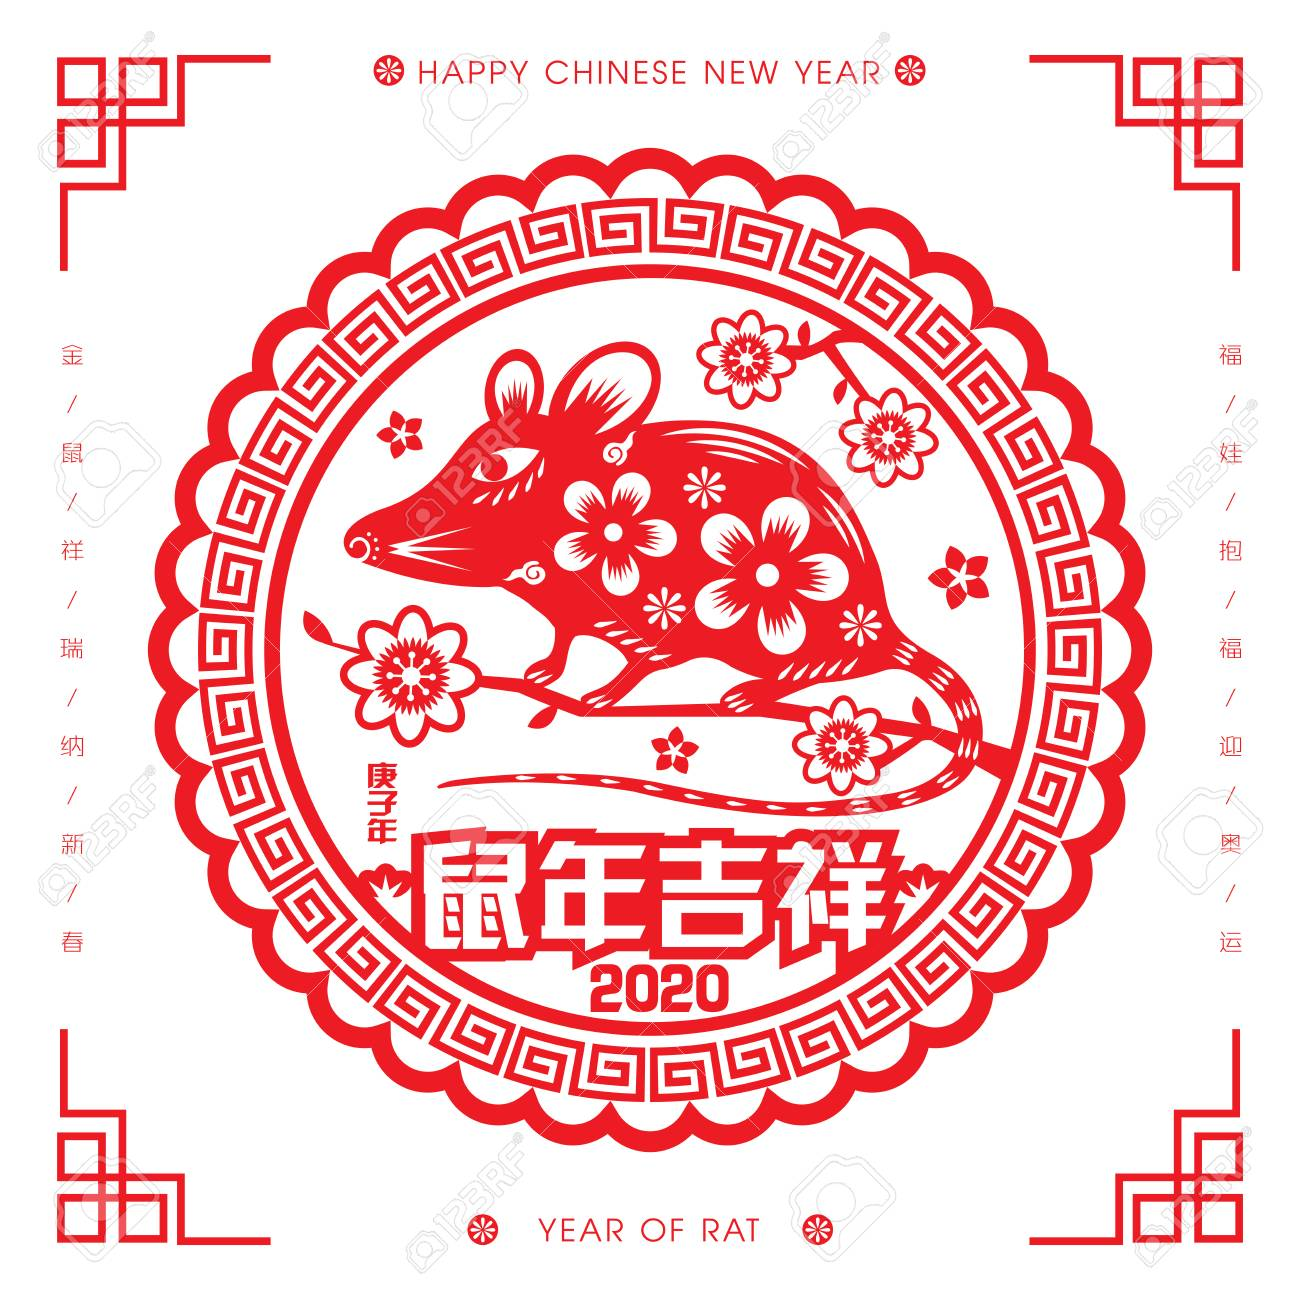 2020 Chinese New Year Paper Cutting Year of the Rat Vector Illustration (Chinese Translation: Auspicious Year of the rat) - 120431636